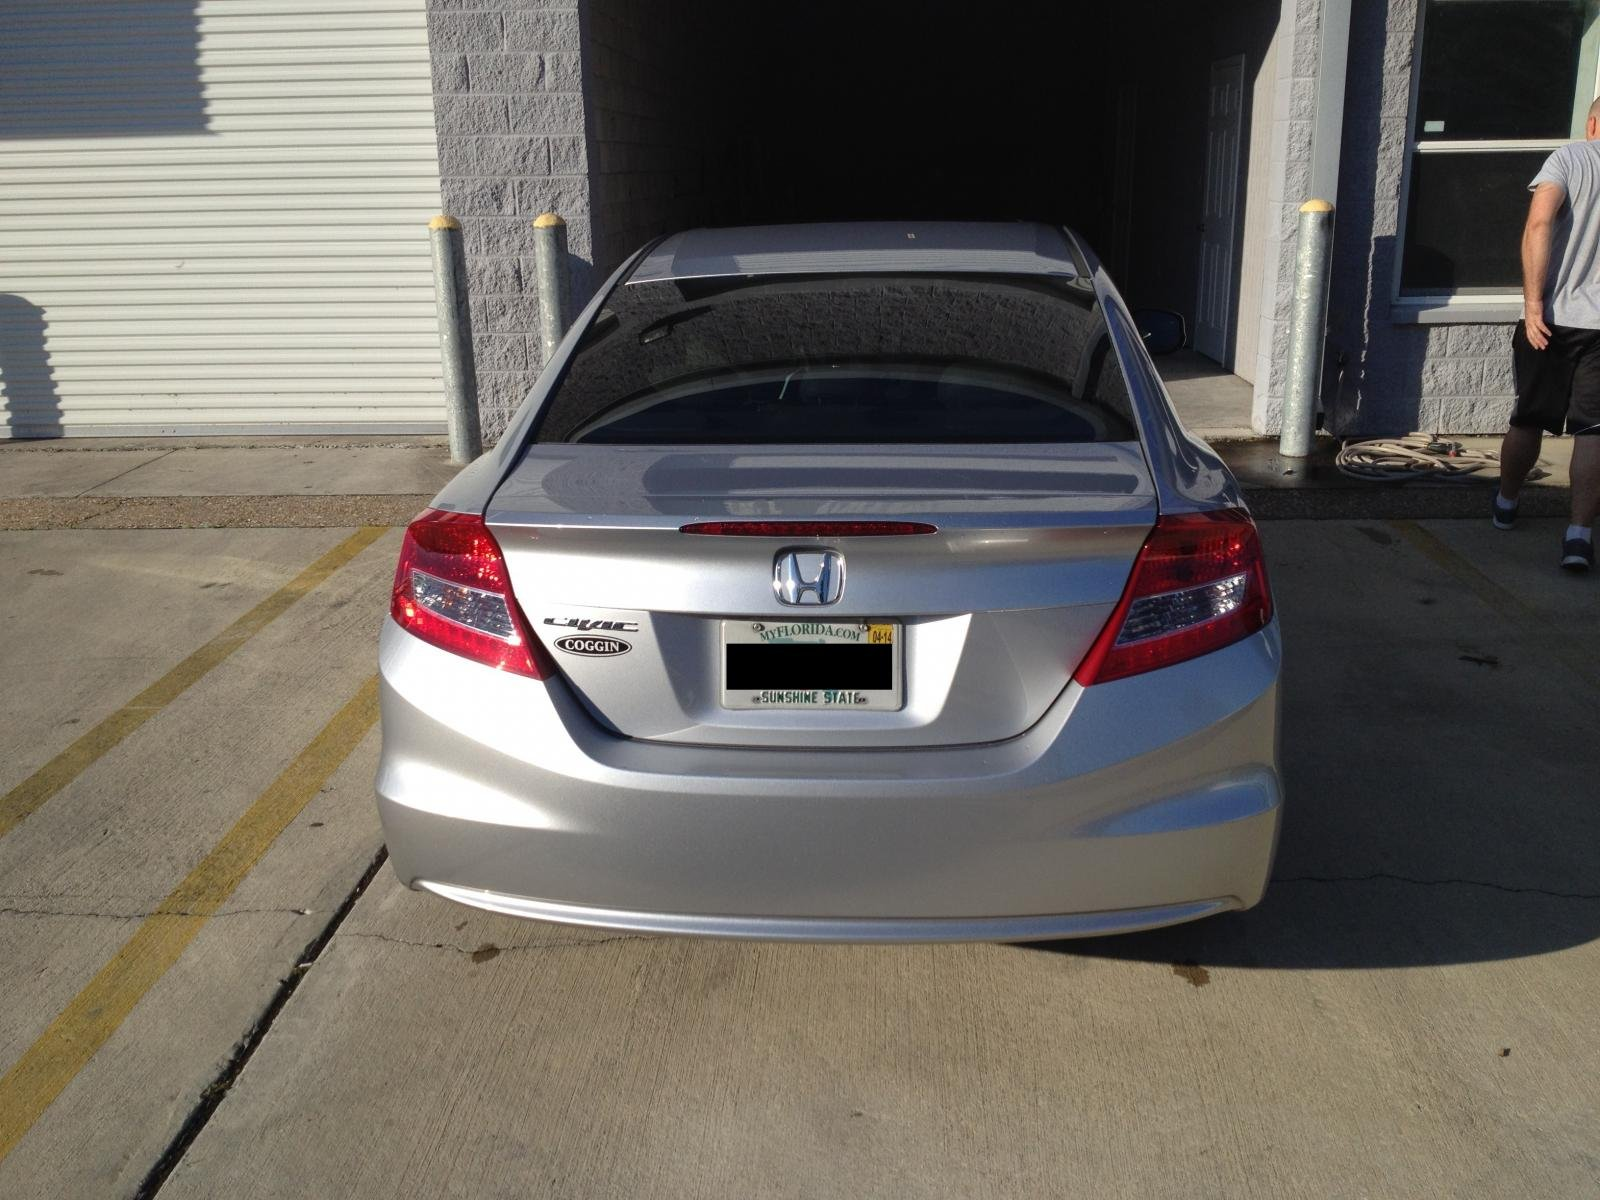 Dipped '12 civic EX Coupe.